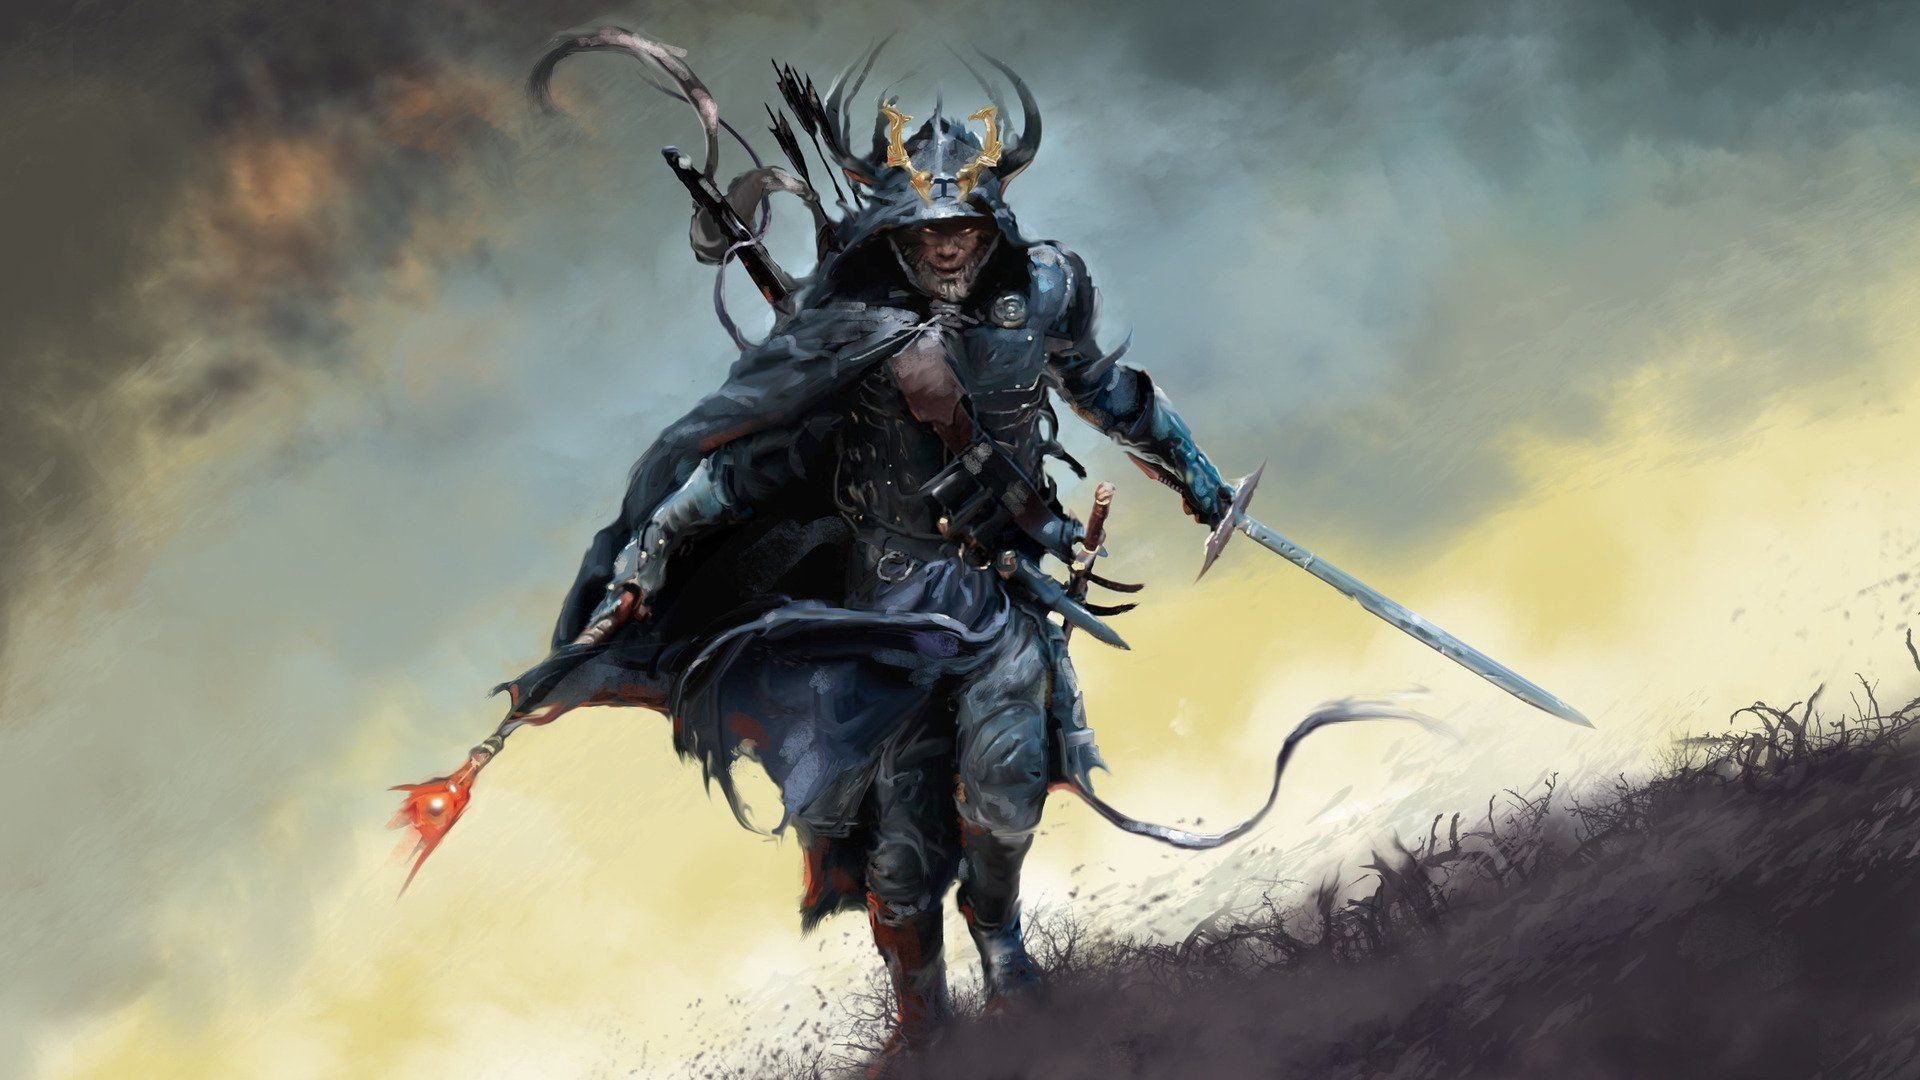 Samurai Warrior Wallpaper 77 Images